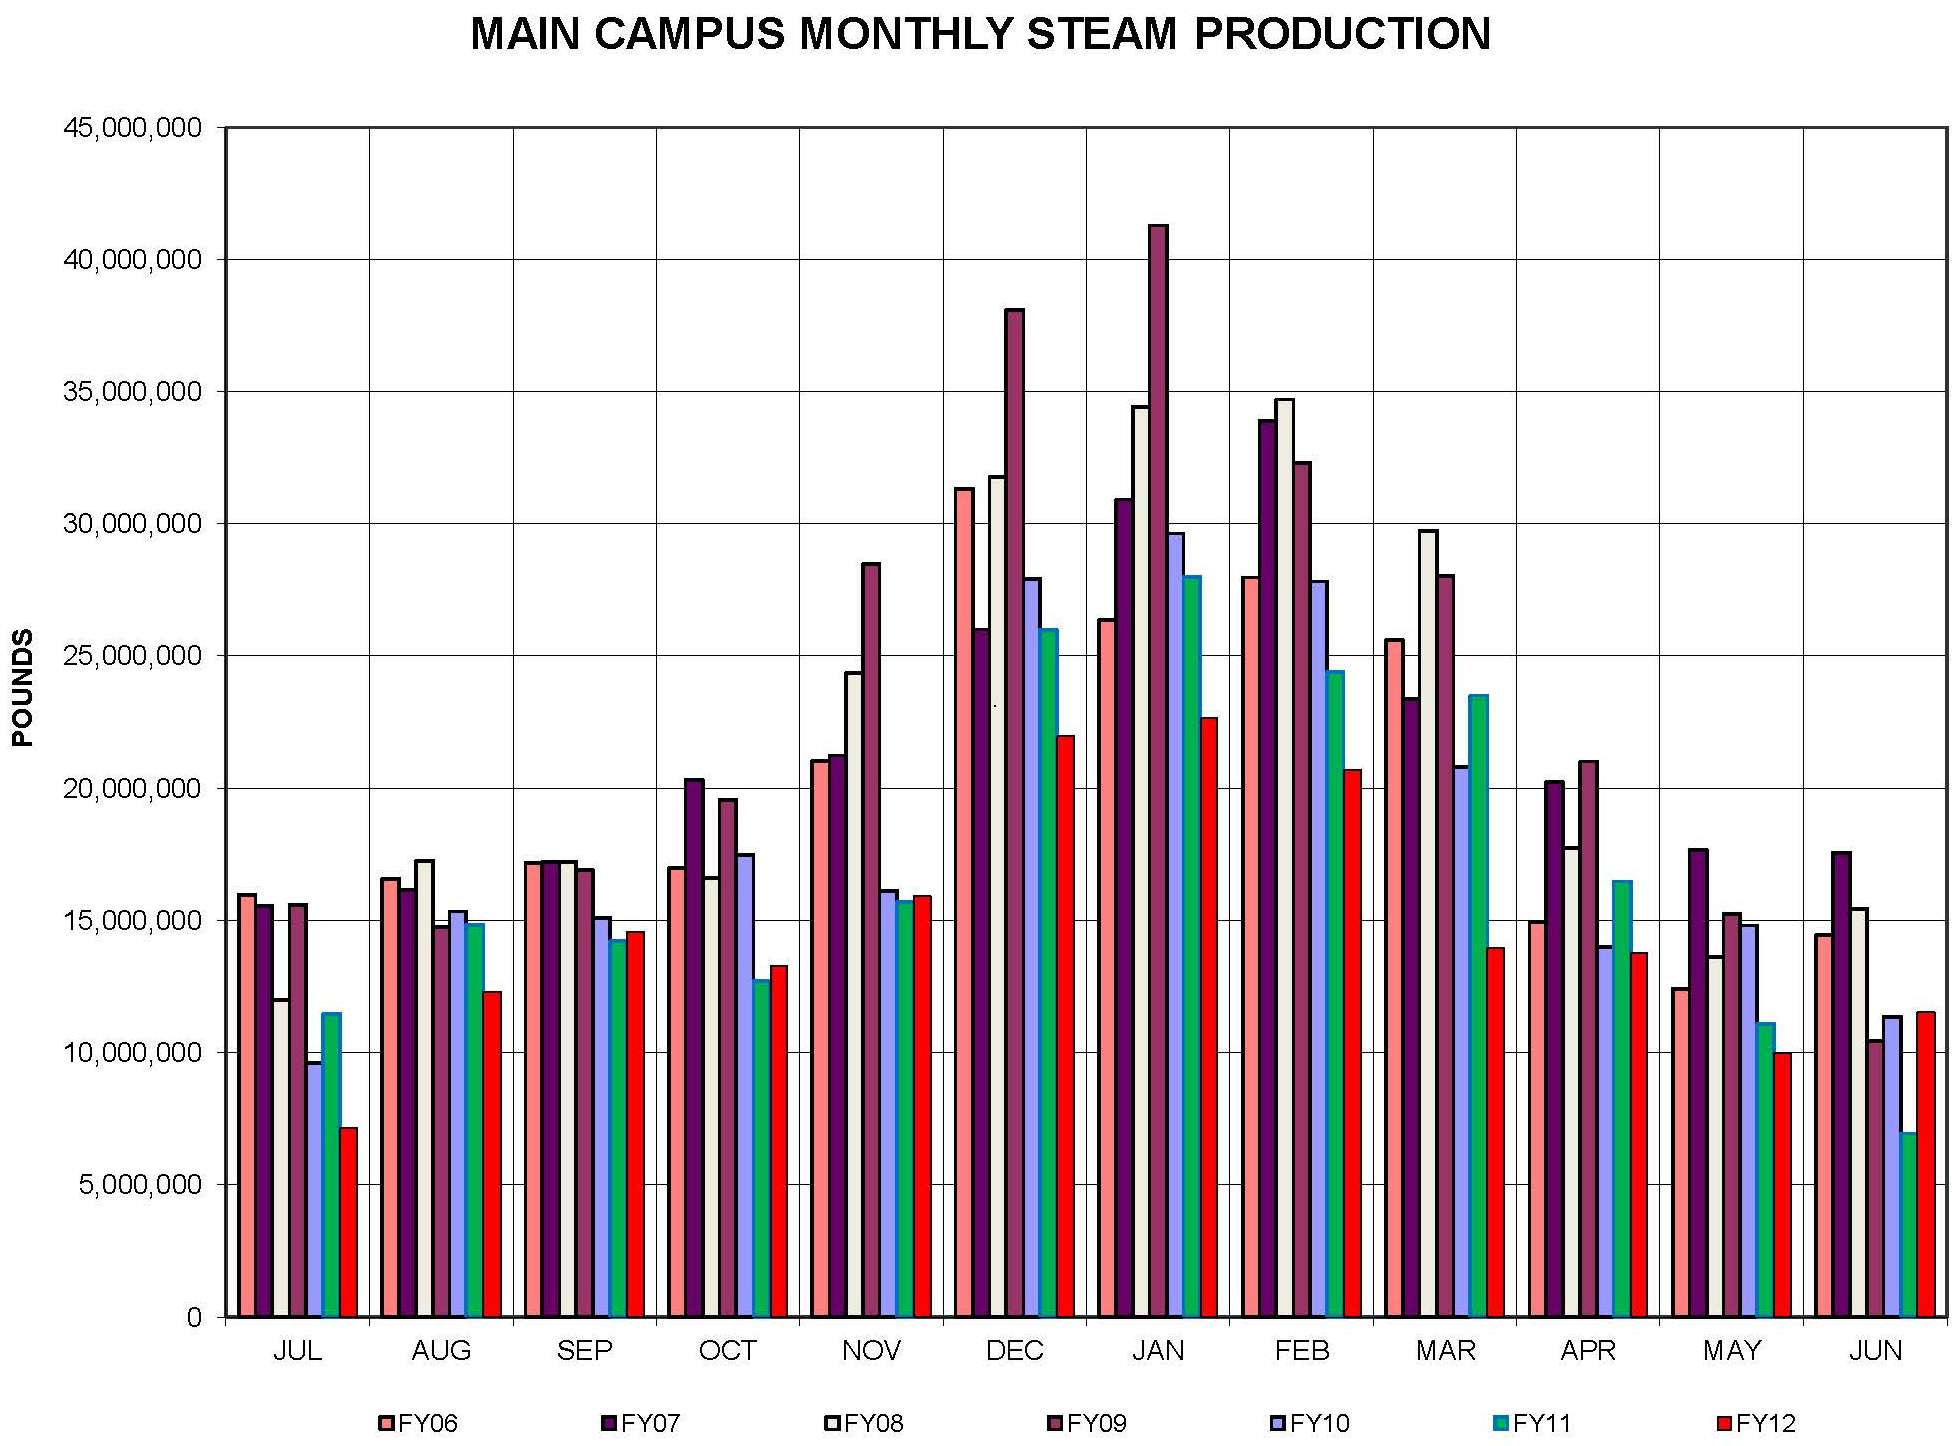 Annual Steam Production for Main Campus from 2006 - 2012